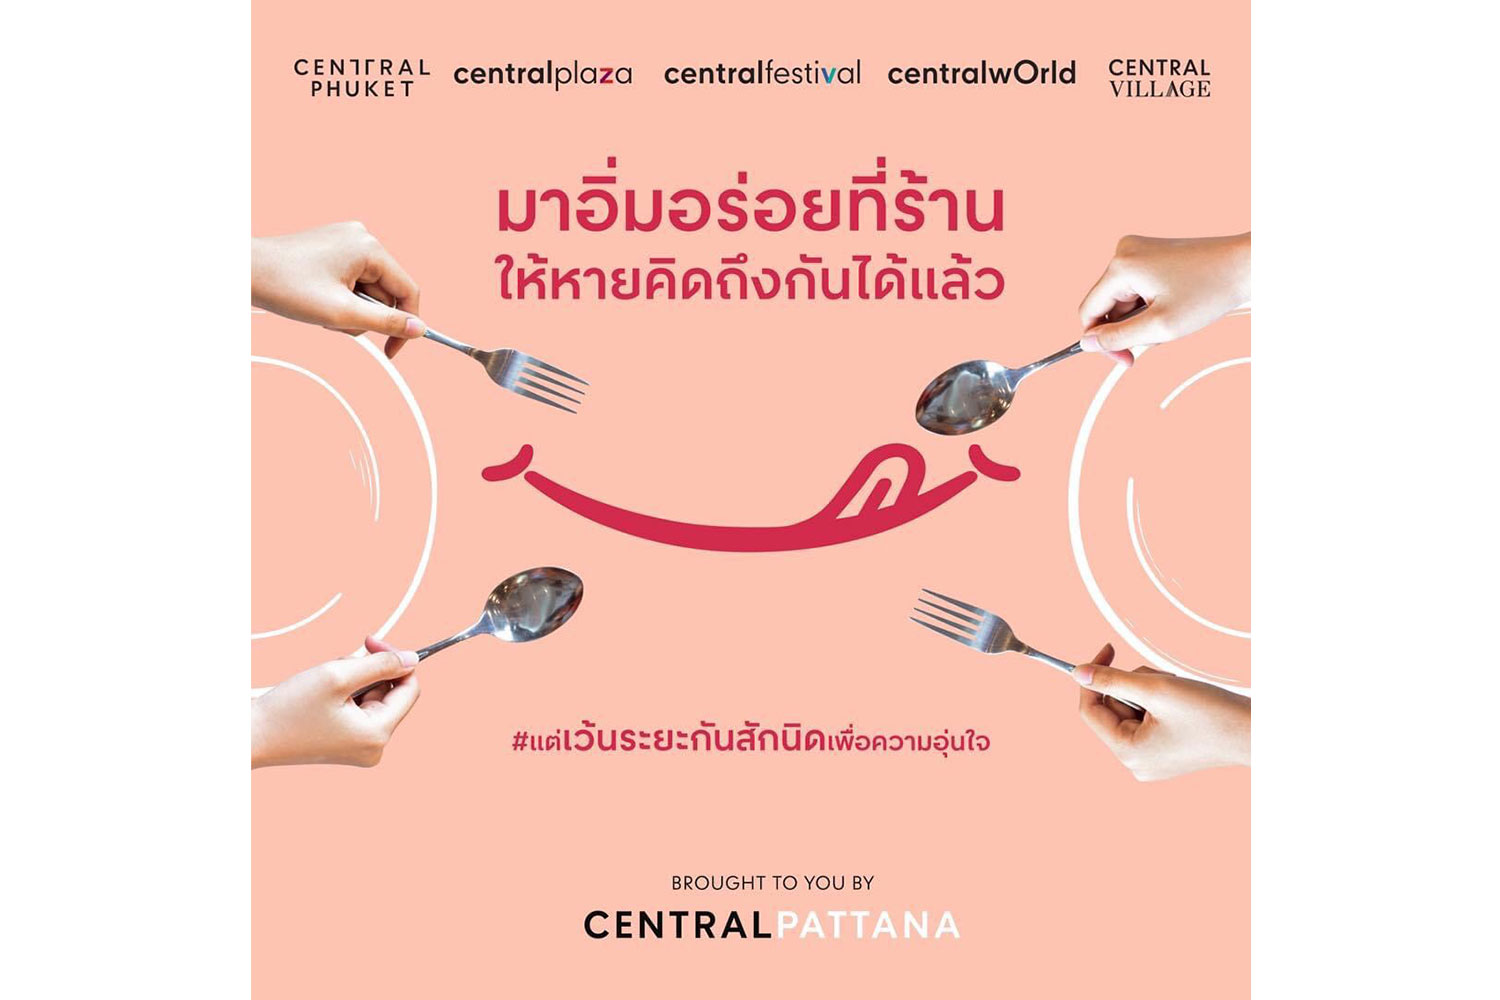 Central ready to dine-in again with new 'Hygiene & Safety' masterplan